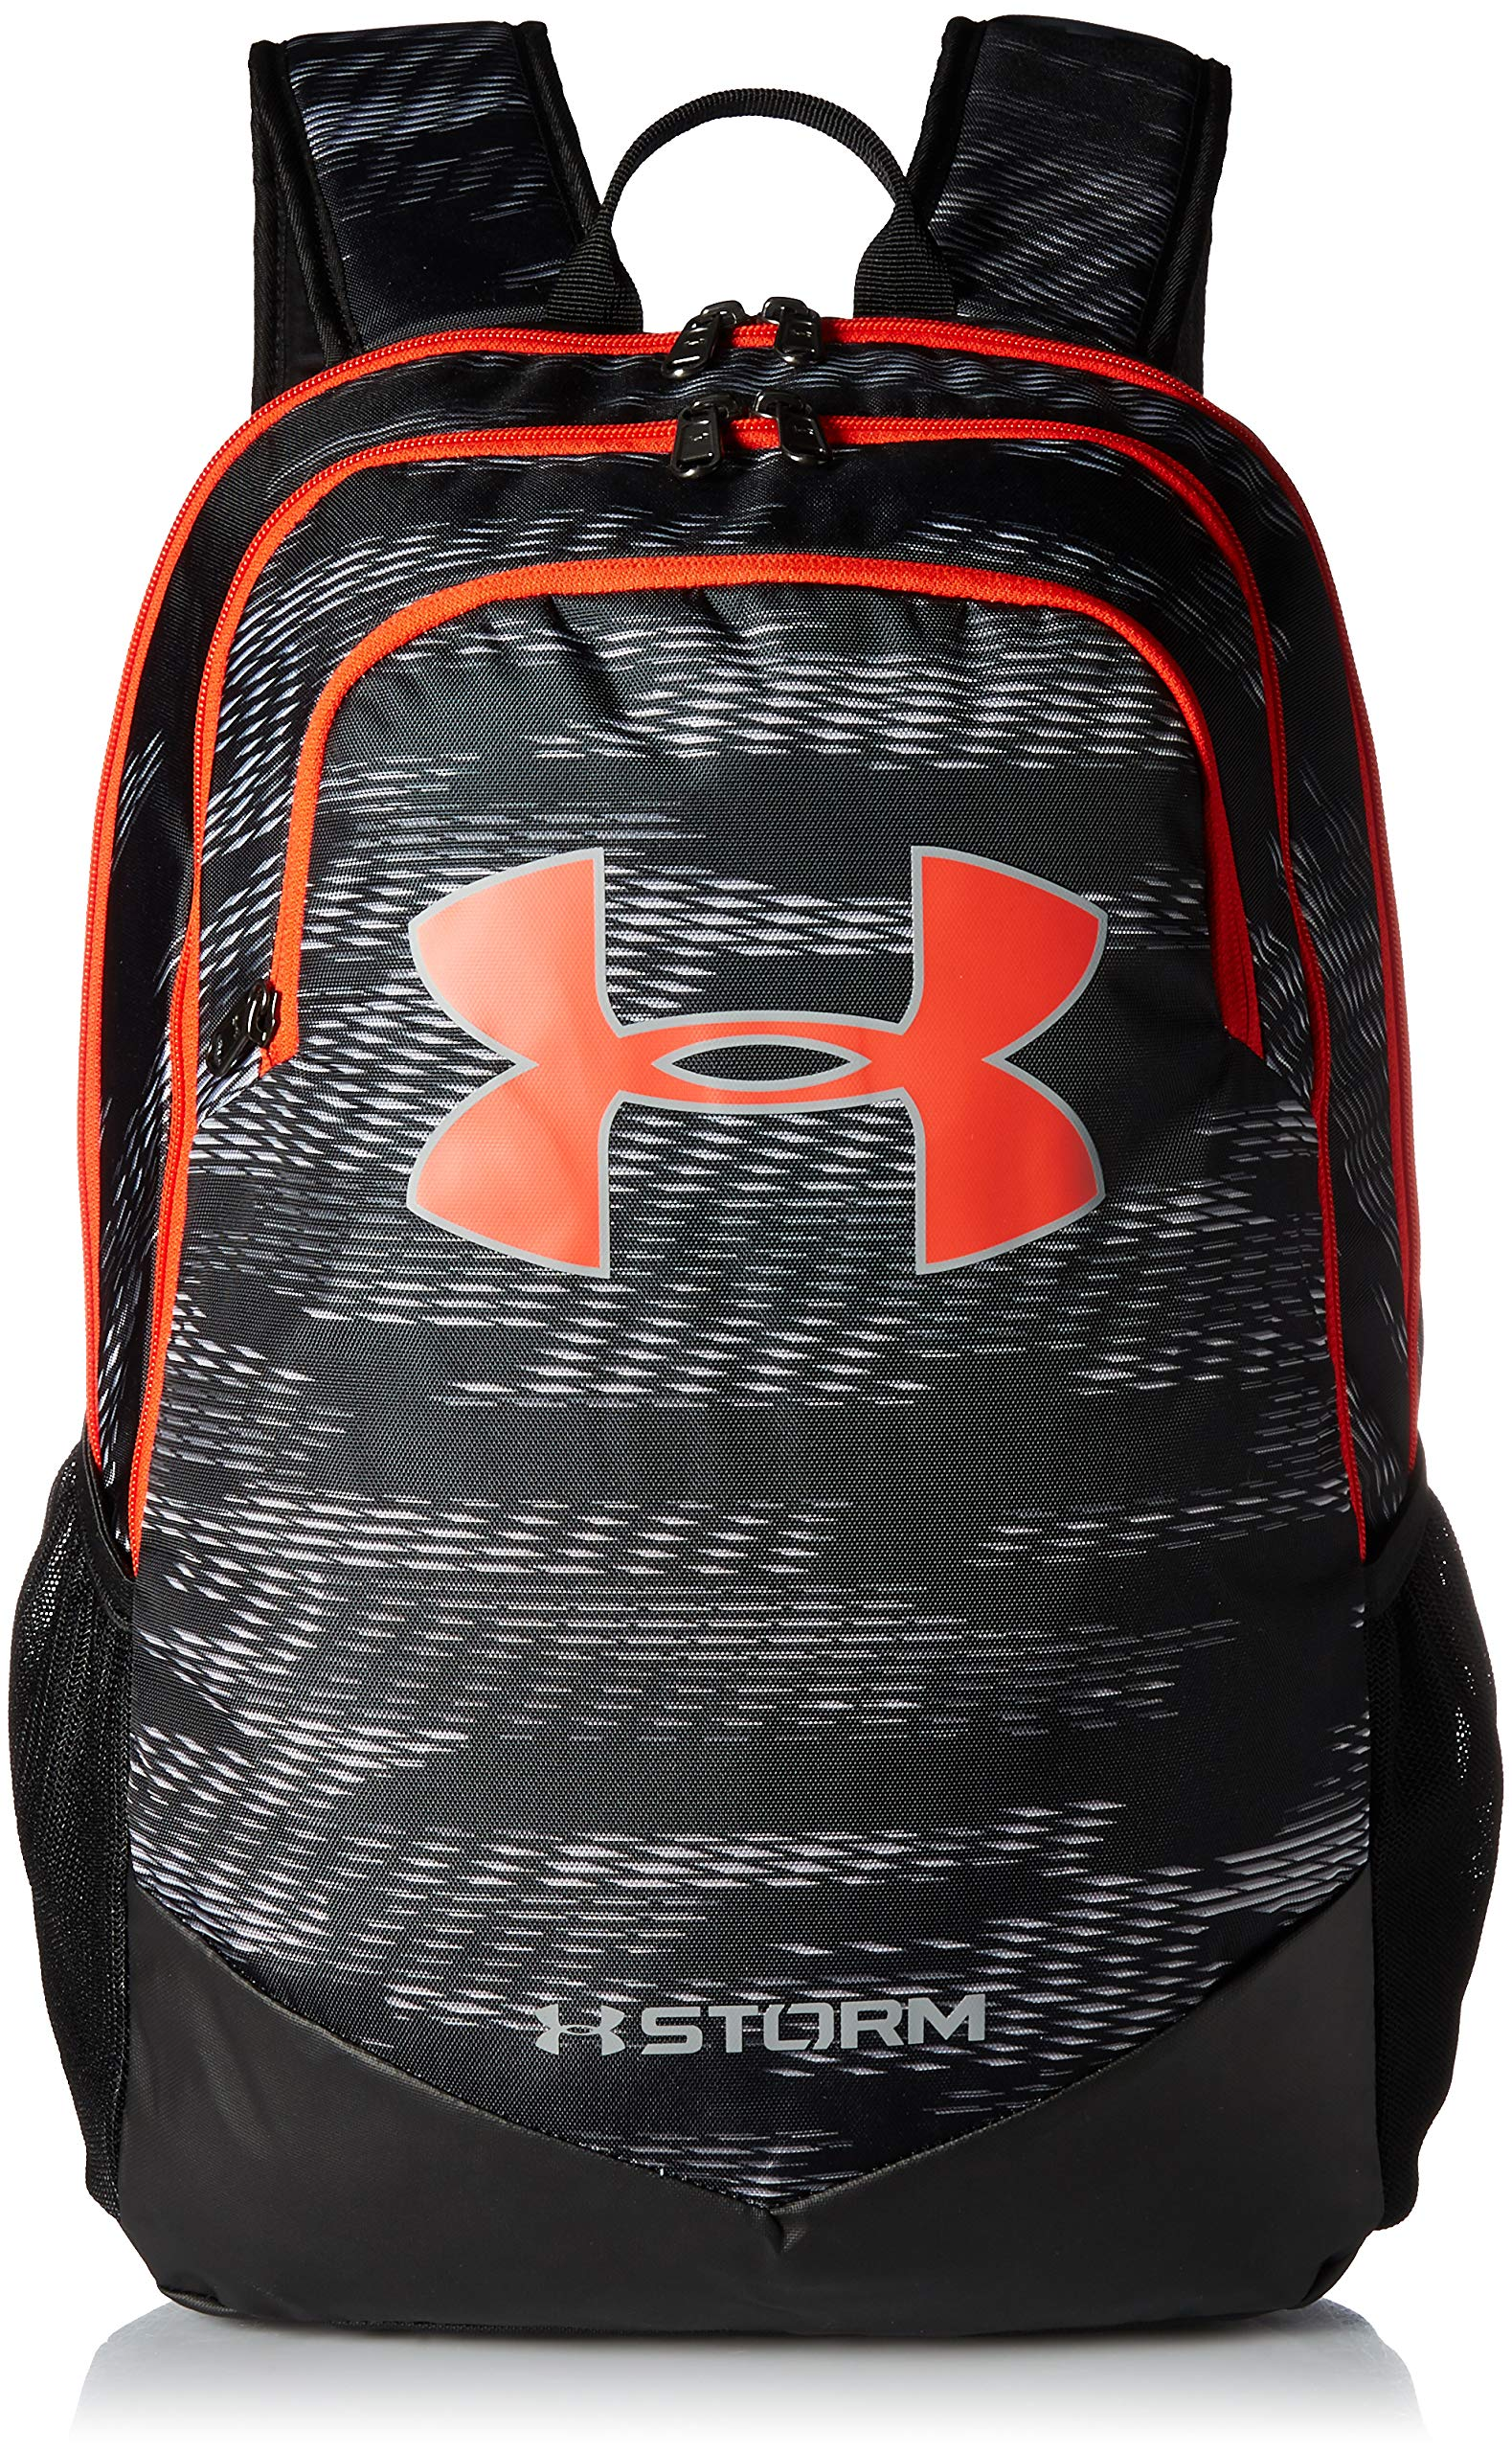 Under Armour Boy's Storm Scrimmage Backpack, Black (004)/Radio Red, One Size